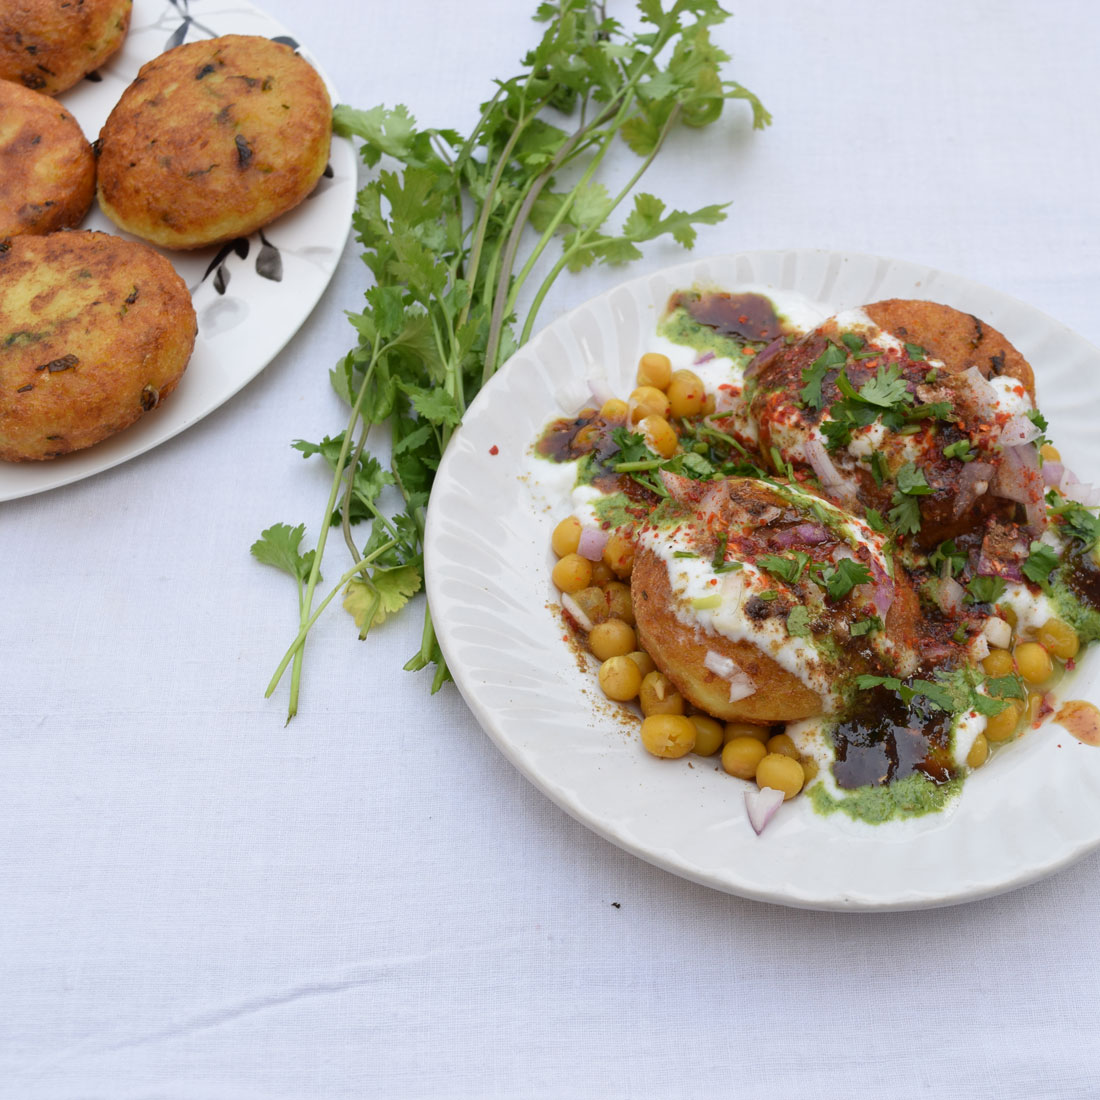 Indian Street Food Aloo Tikki Recipe: How To Make Aloo Tikki Matar